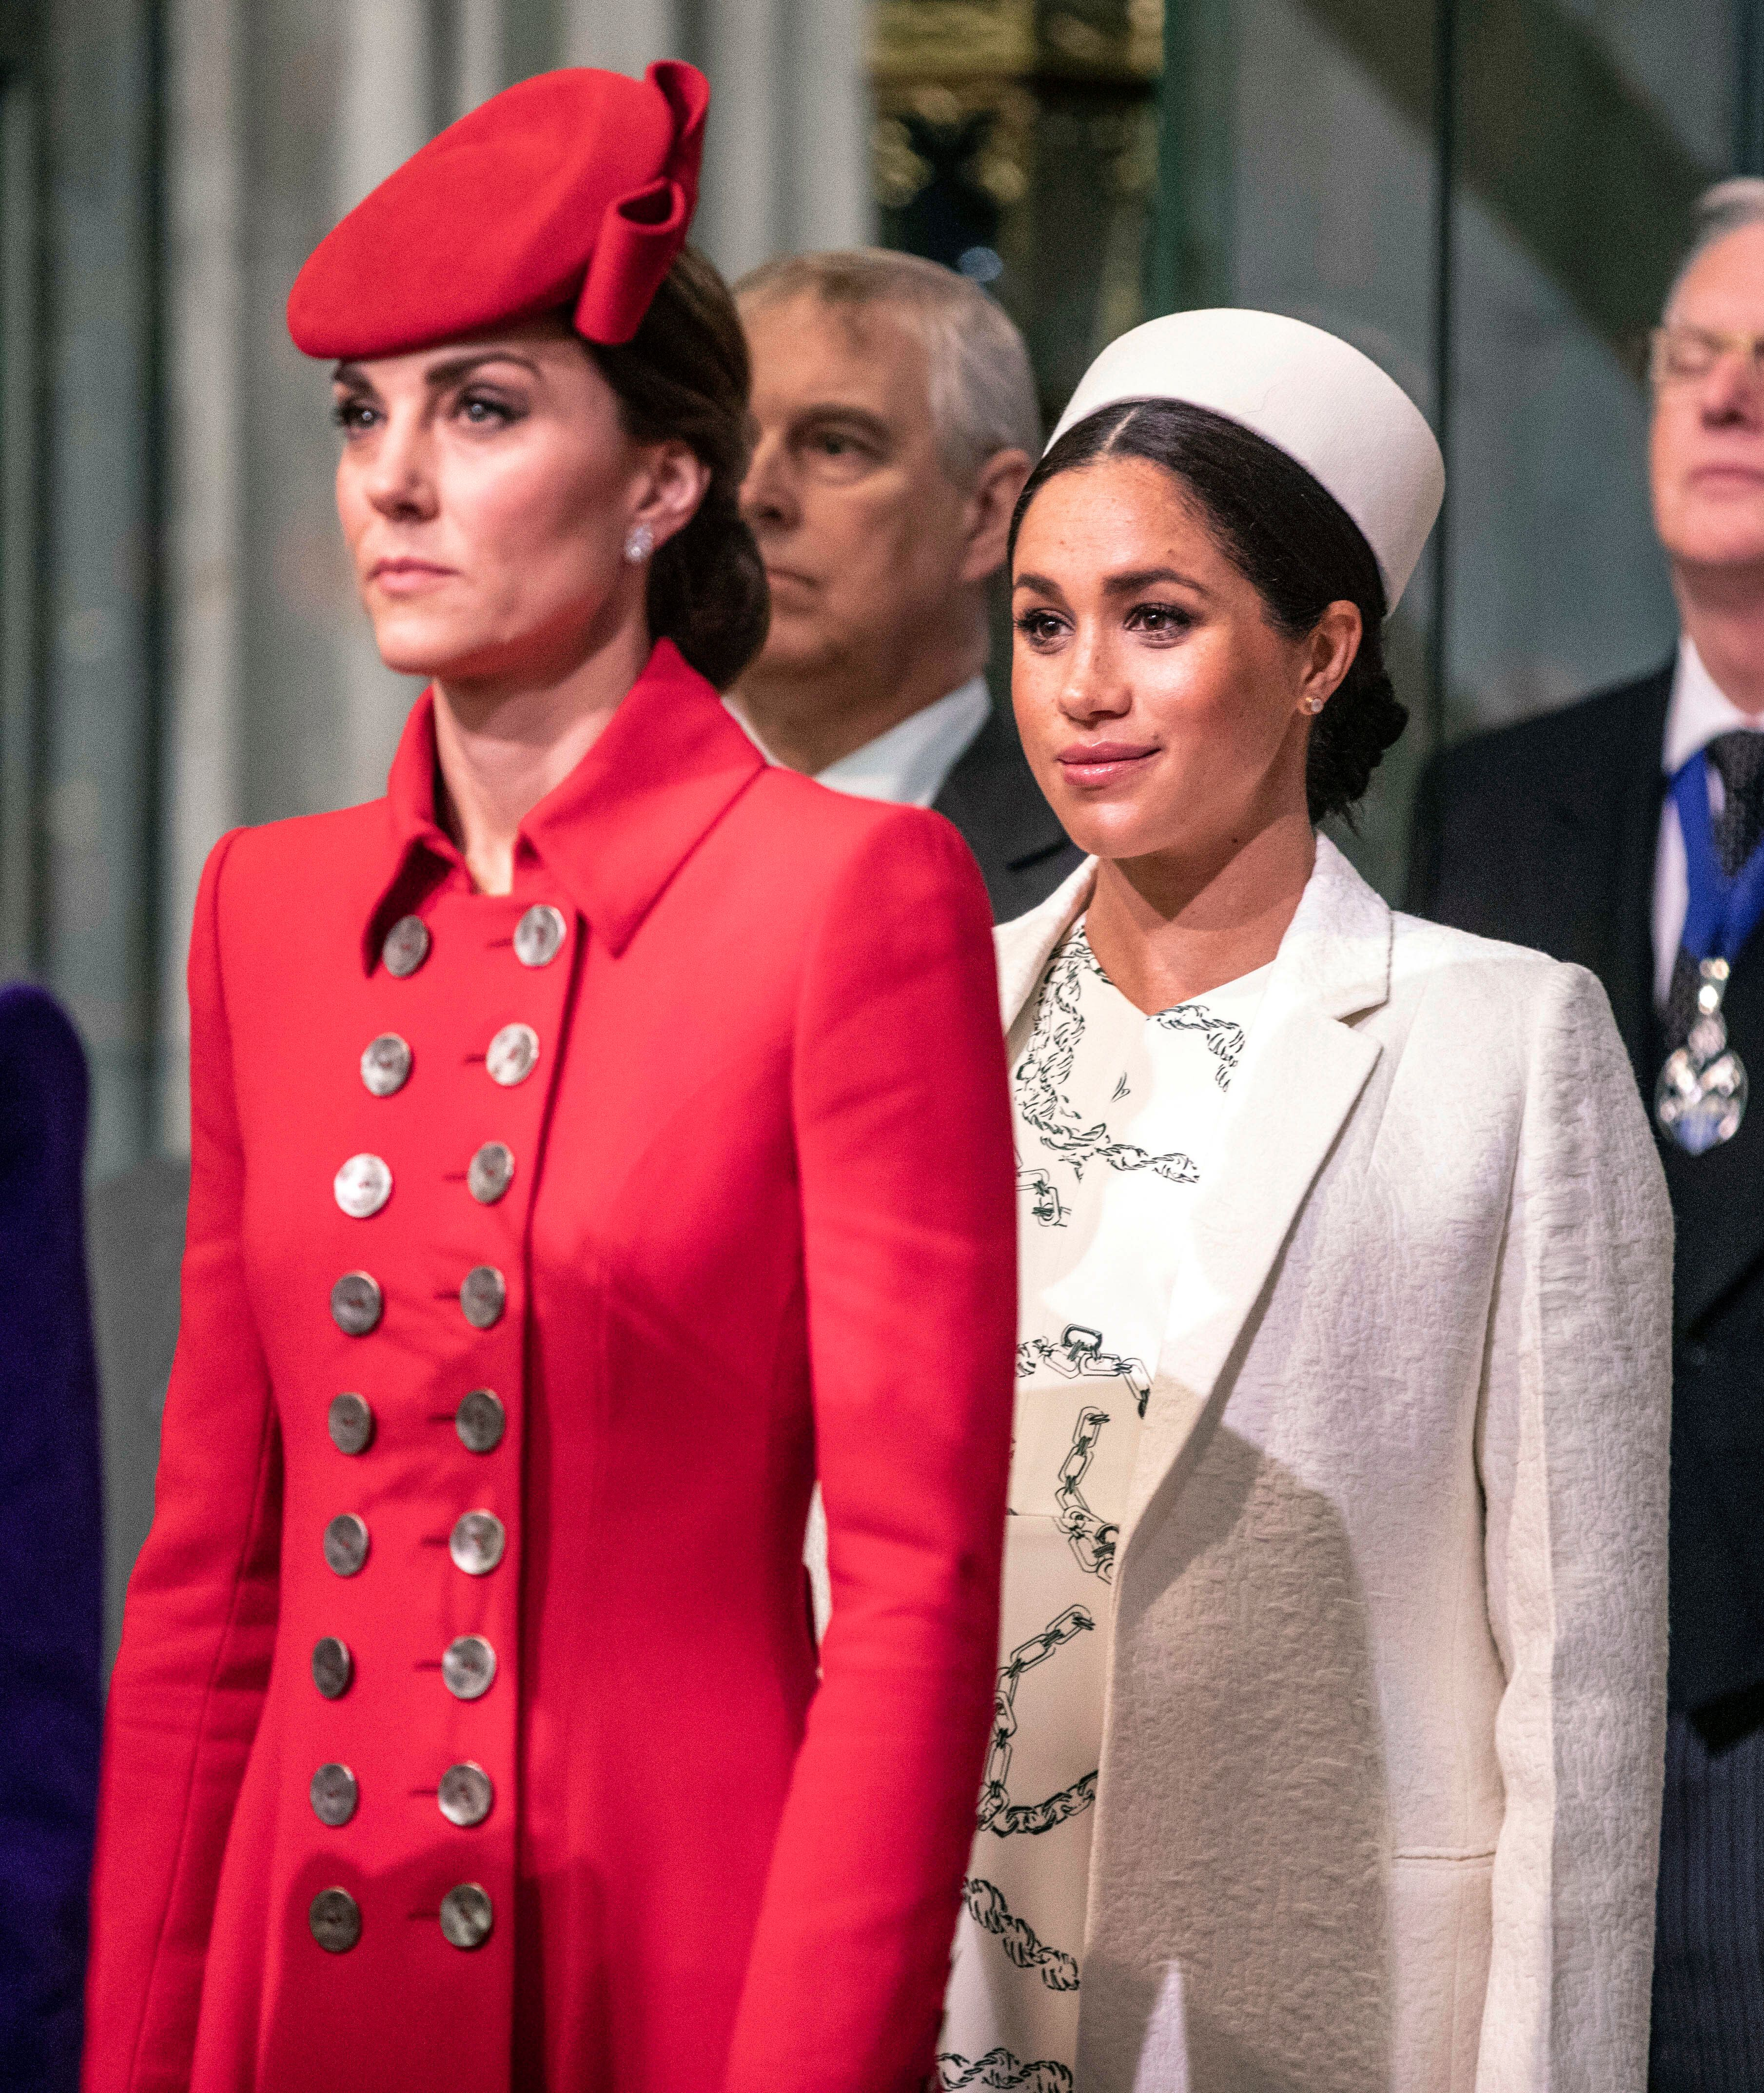 Britain's Kate, the Duchess of Cambridge, foreground, and Meghan, the Duchess of Sussex attend the Commonwealth Service with other members of the Royal family at Westminster Abbey in London, Monday, March 11, 2019. Commonwealth Day has a special significance this year, as 2019 marks the 70th anniversary of the modern Commonwealth - a global network of 53 countries and almost 2.4 billion people, a third of the world's population, of whom 60 percent are under 30 years old. (Richard Pohle/Pool Photo via AP)